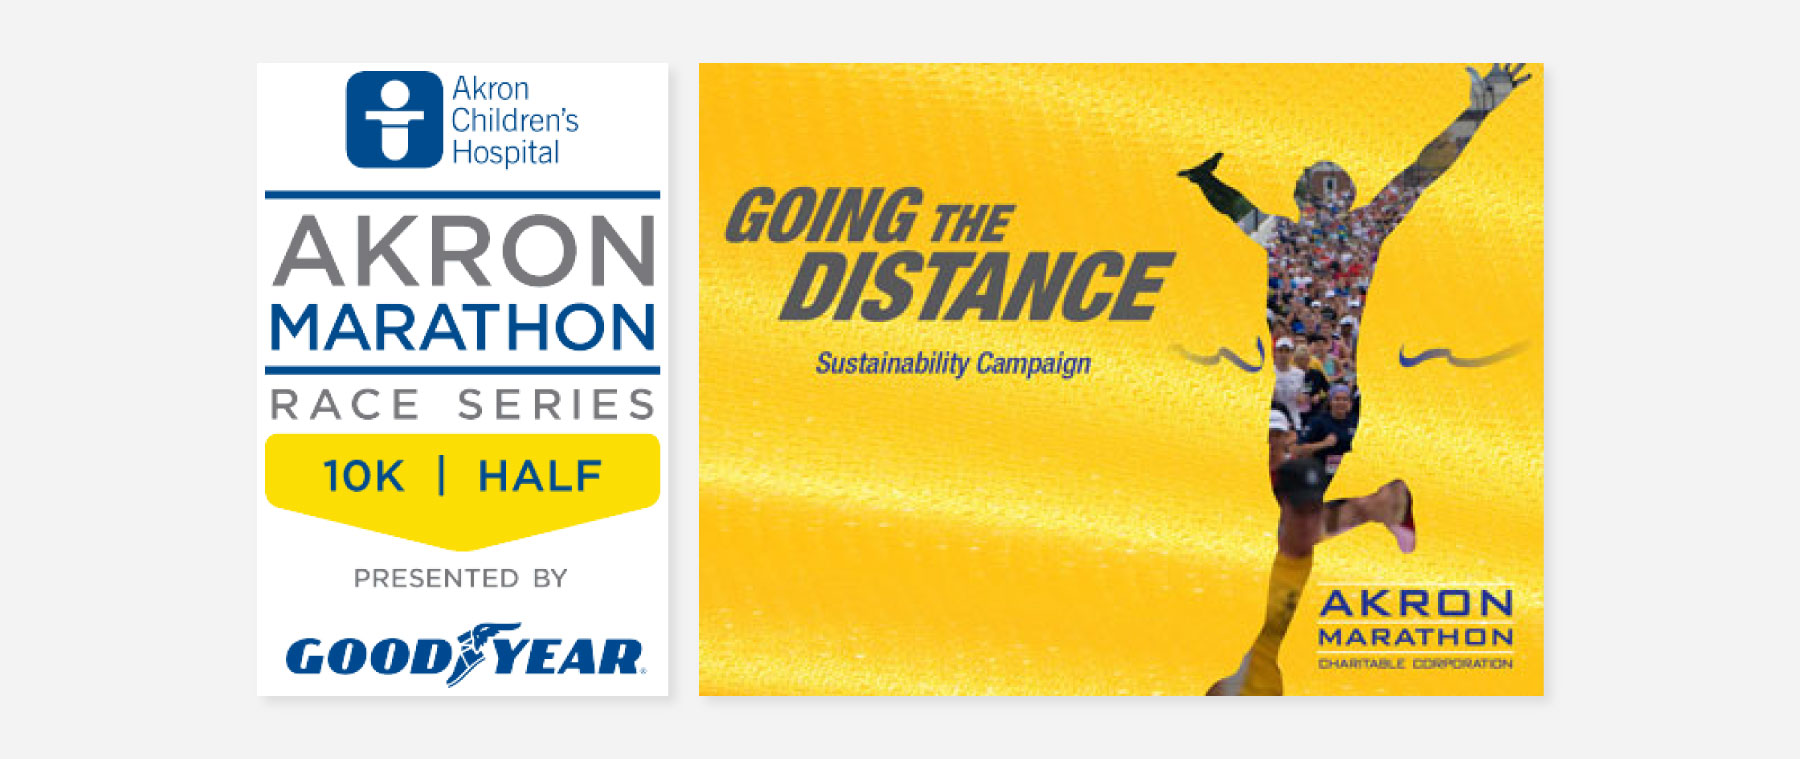 Ads created for the Akron Children's Hospital marathon